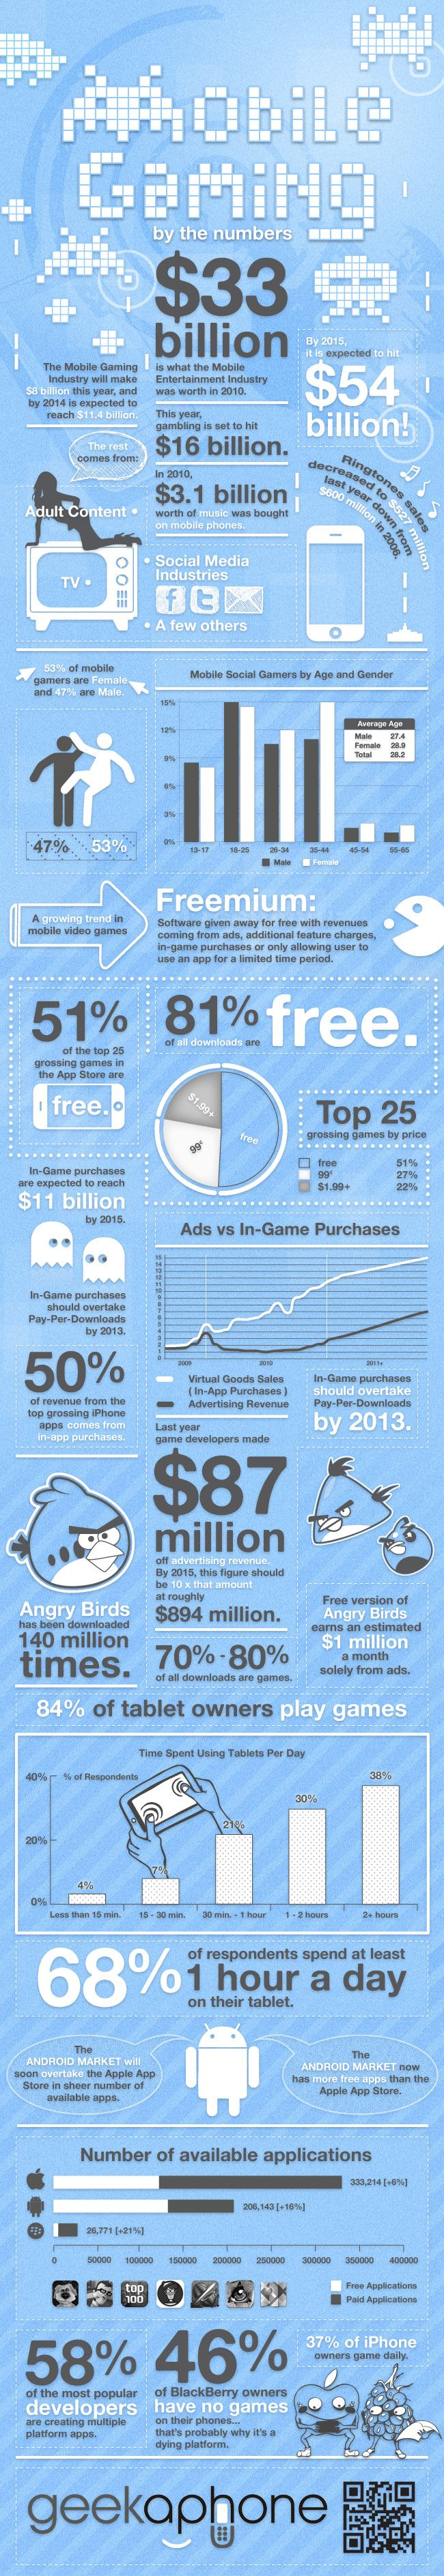 Mobile Gaming is Dominating the Gaming Industry: Numbers Caoh, Games Infographic, Gaming, Social Media, Online Games, Mobiles Games, Mobile Game, Socialmedia, Favorite Gam